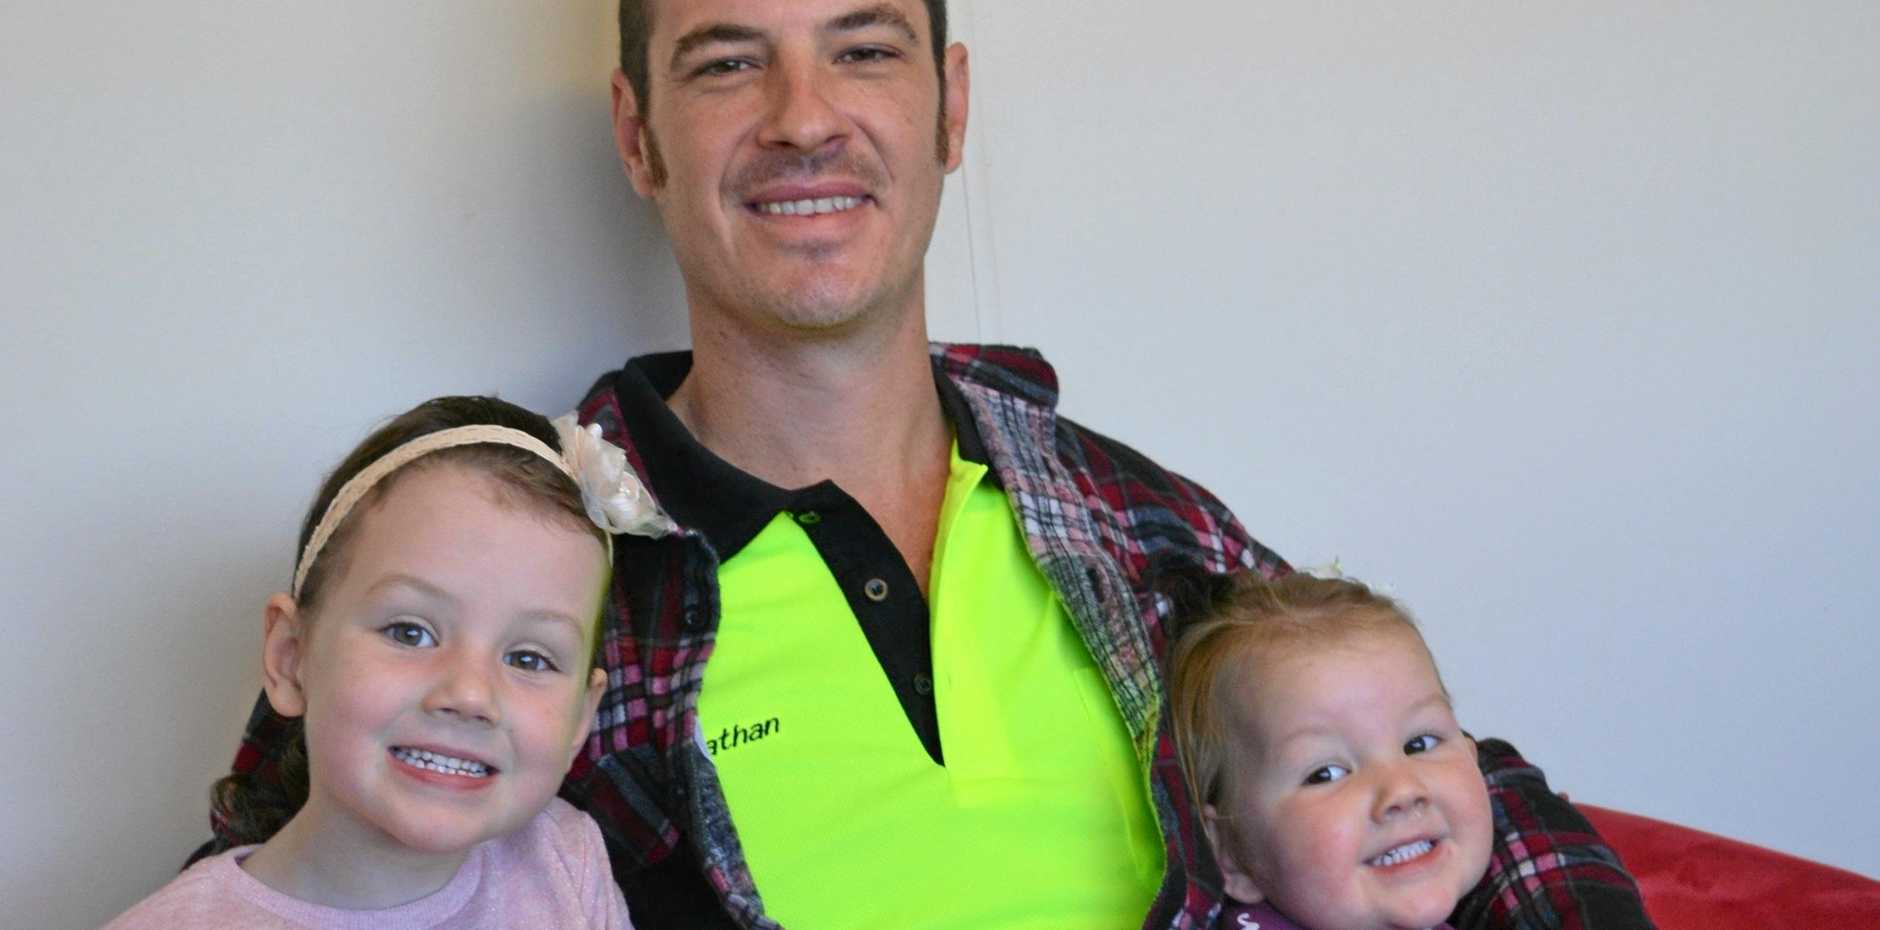 LUKCY WIN: Local tradesman Nathan Lee with his daughters Kiara and Mikayla who had been making good use of his new prize.